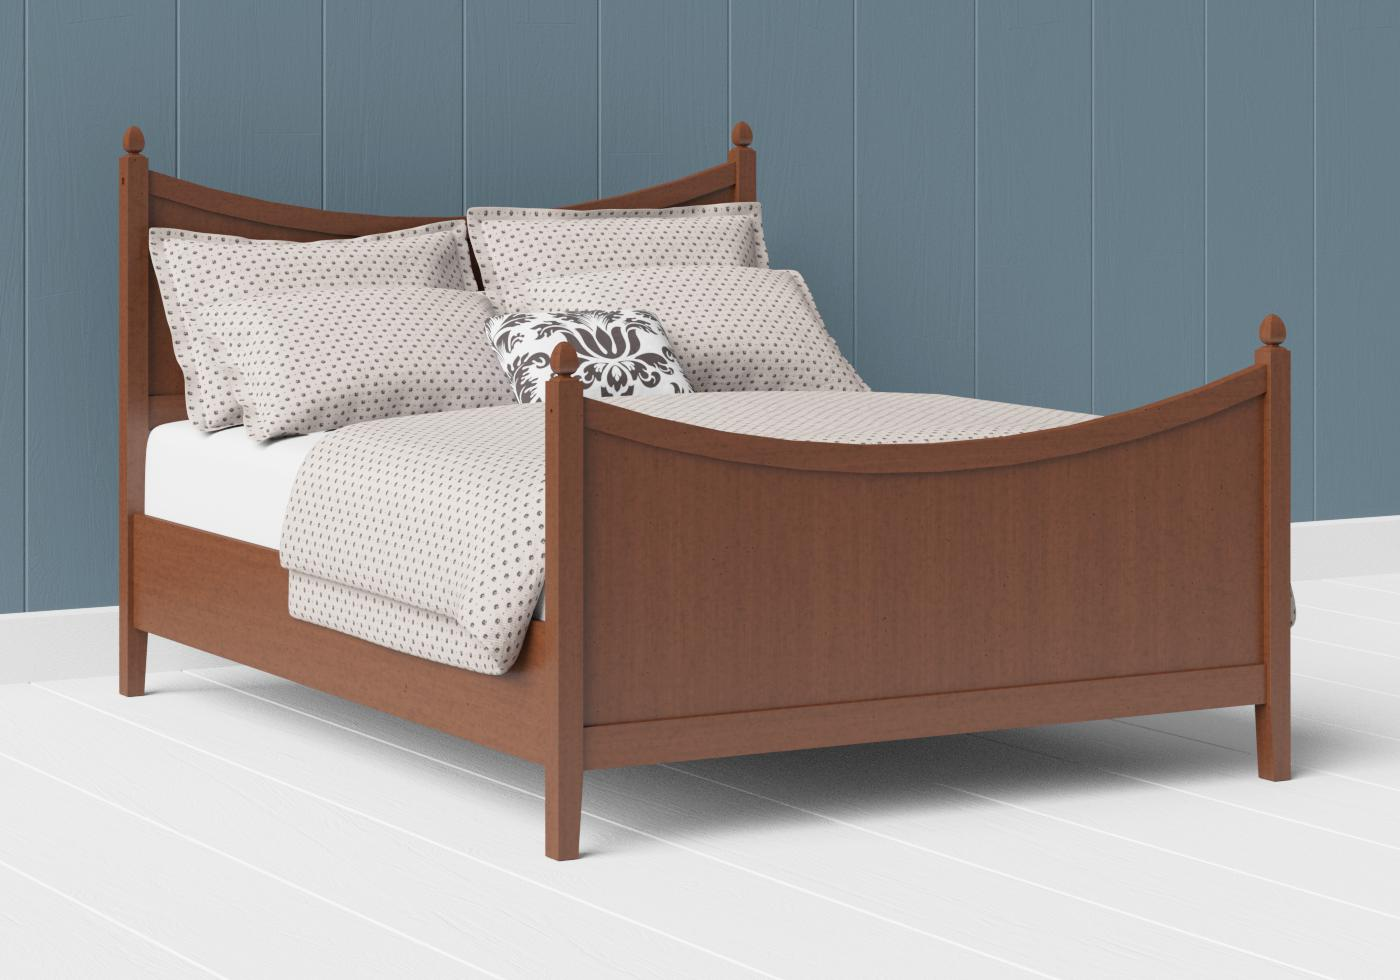 Blake wood bed in a dark cherry finish